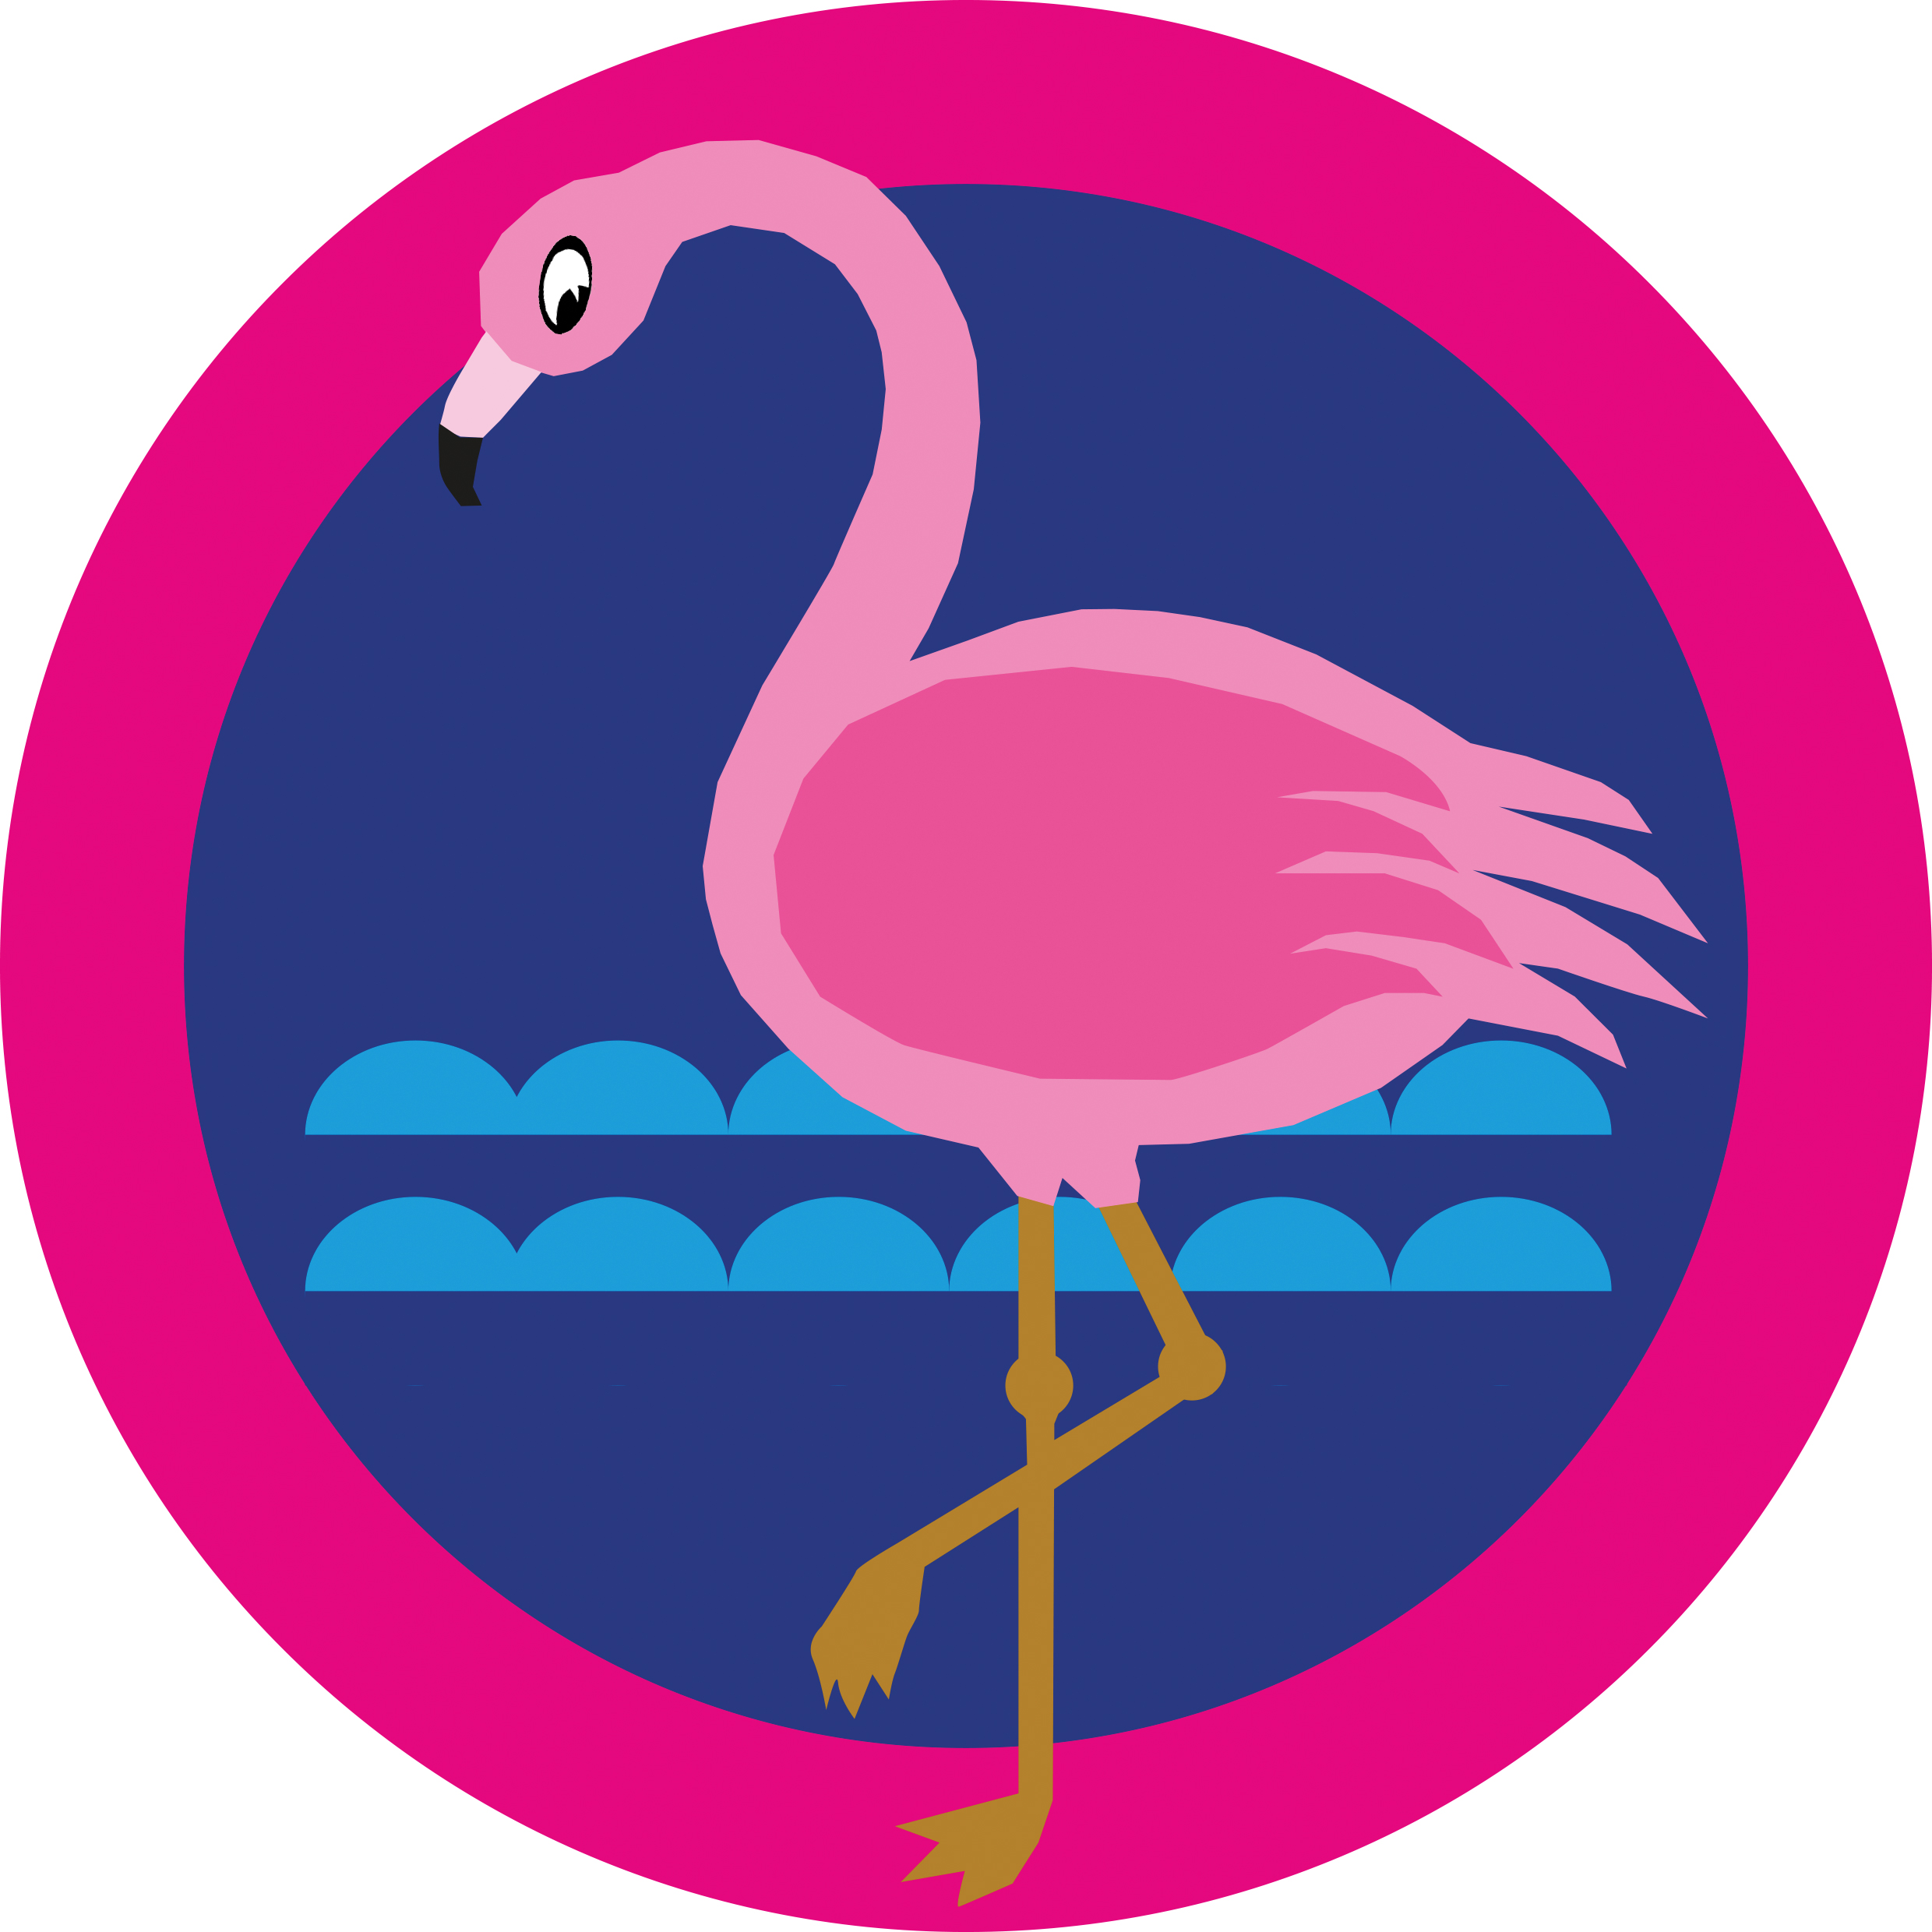 flamingo_icon.jpg